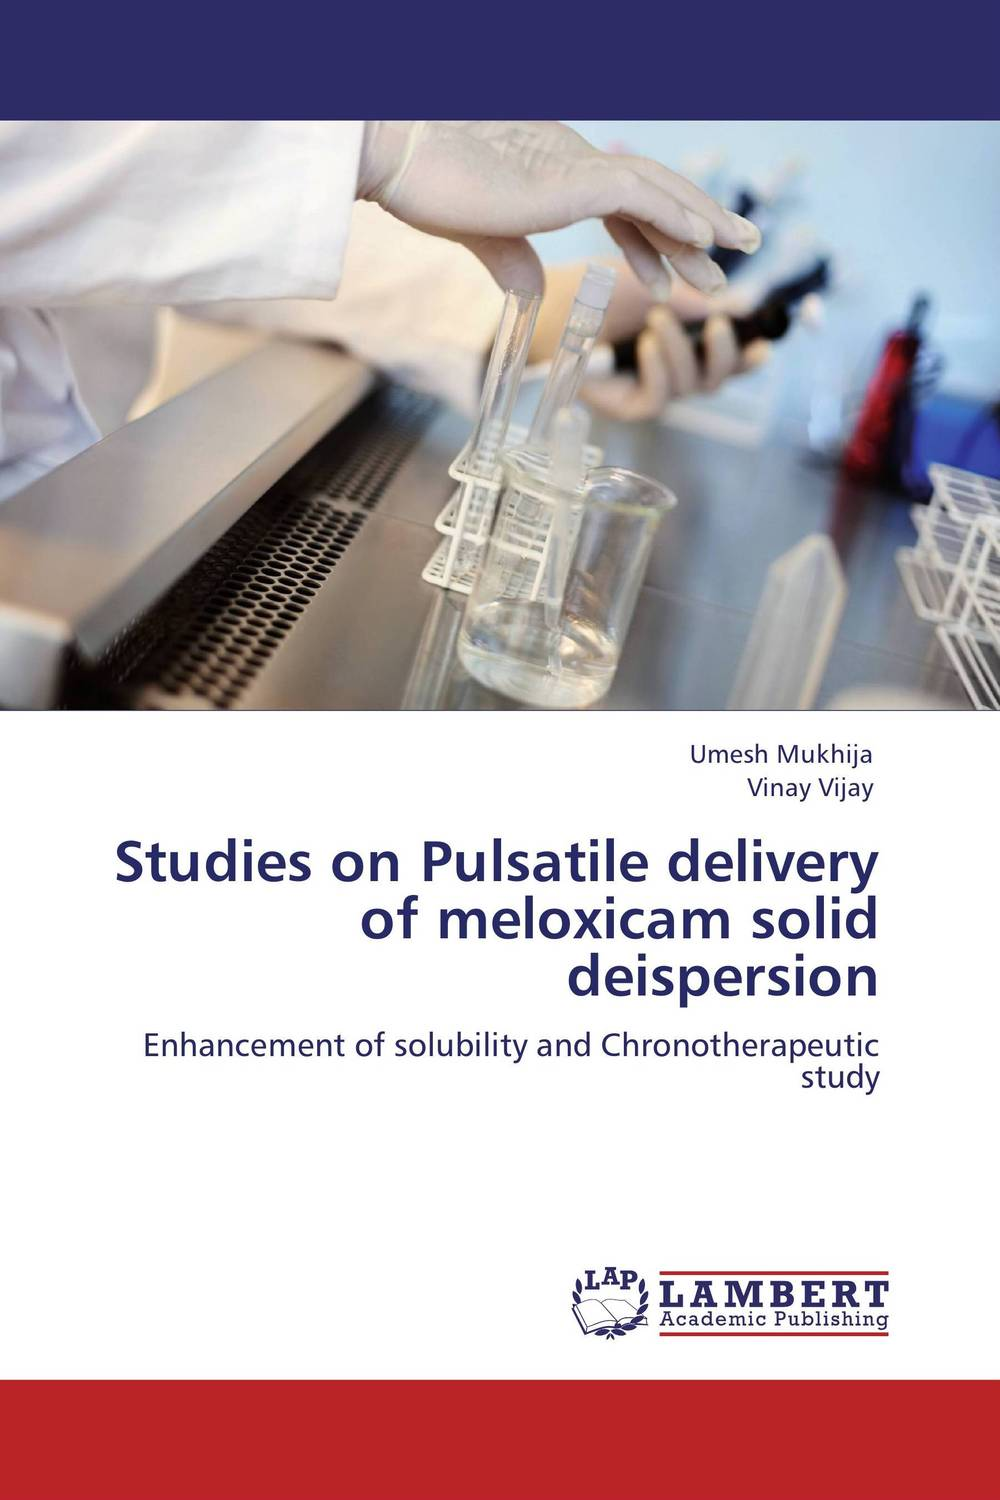 Studies on Pulsatile delivery of meloxicam solid deispersion evaluation of aqueous solubility of hydroxamic acids by pls modelling